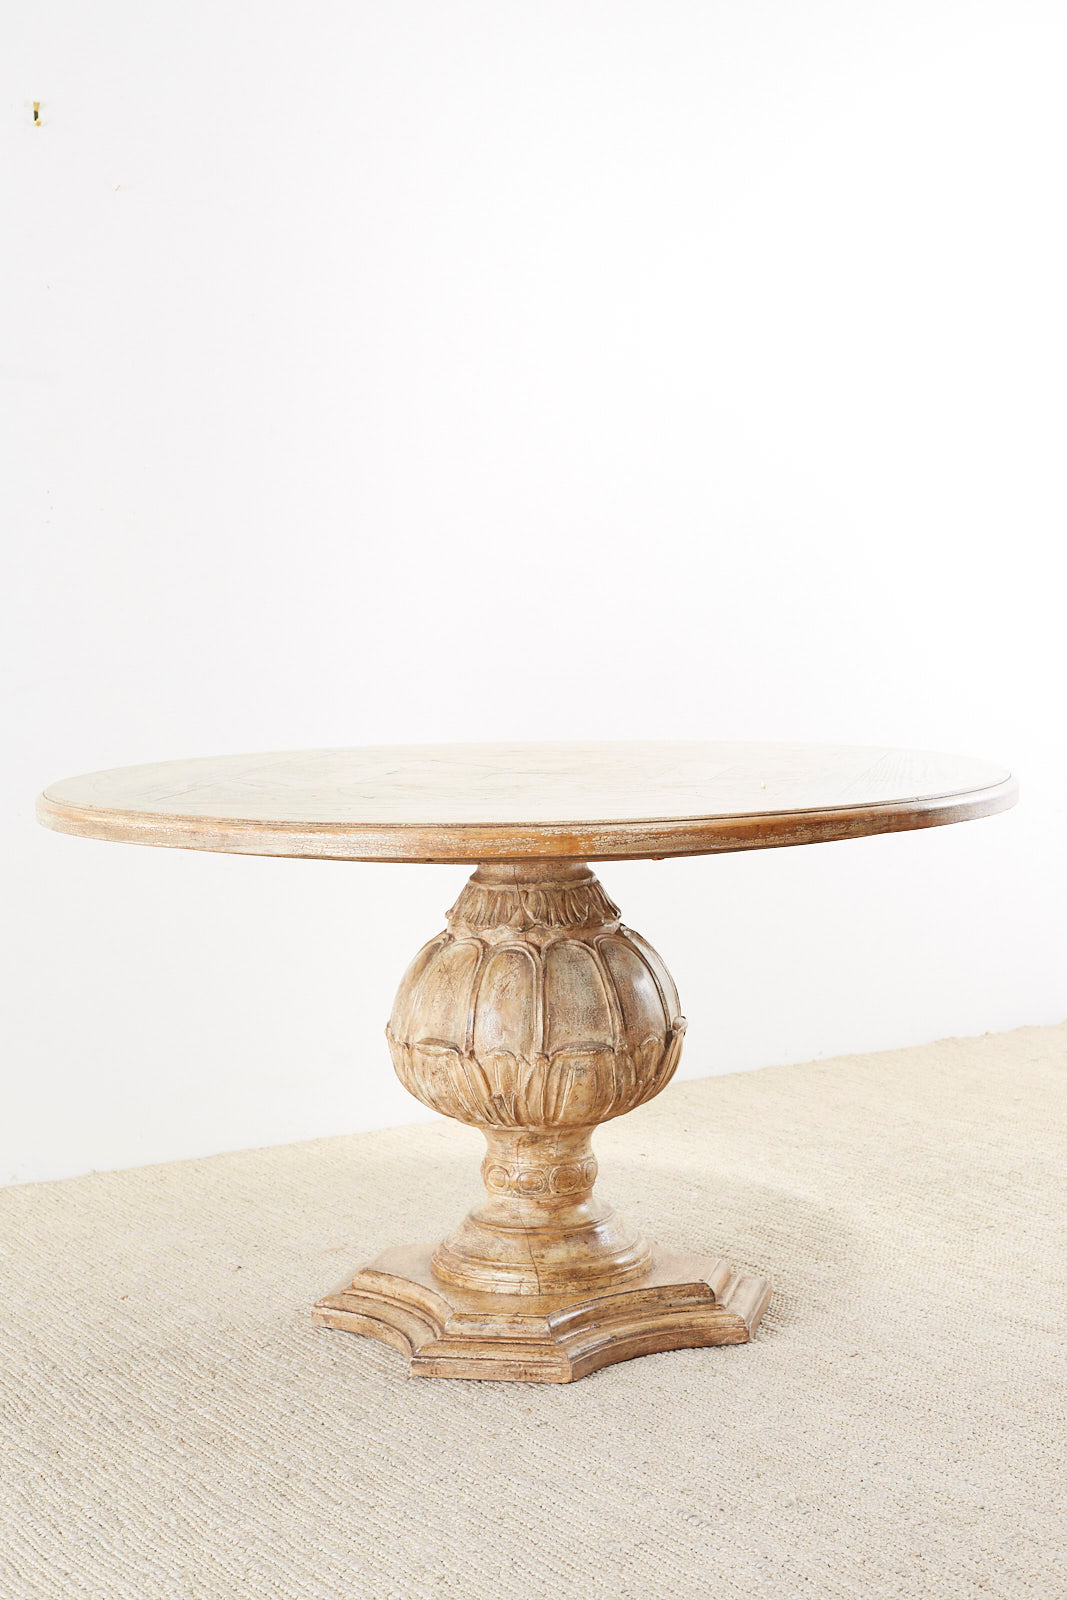 Italian Oak Neoclassical Round Dining or Centre Table